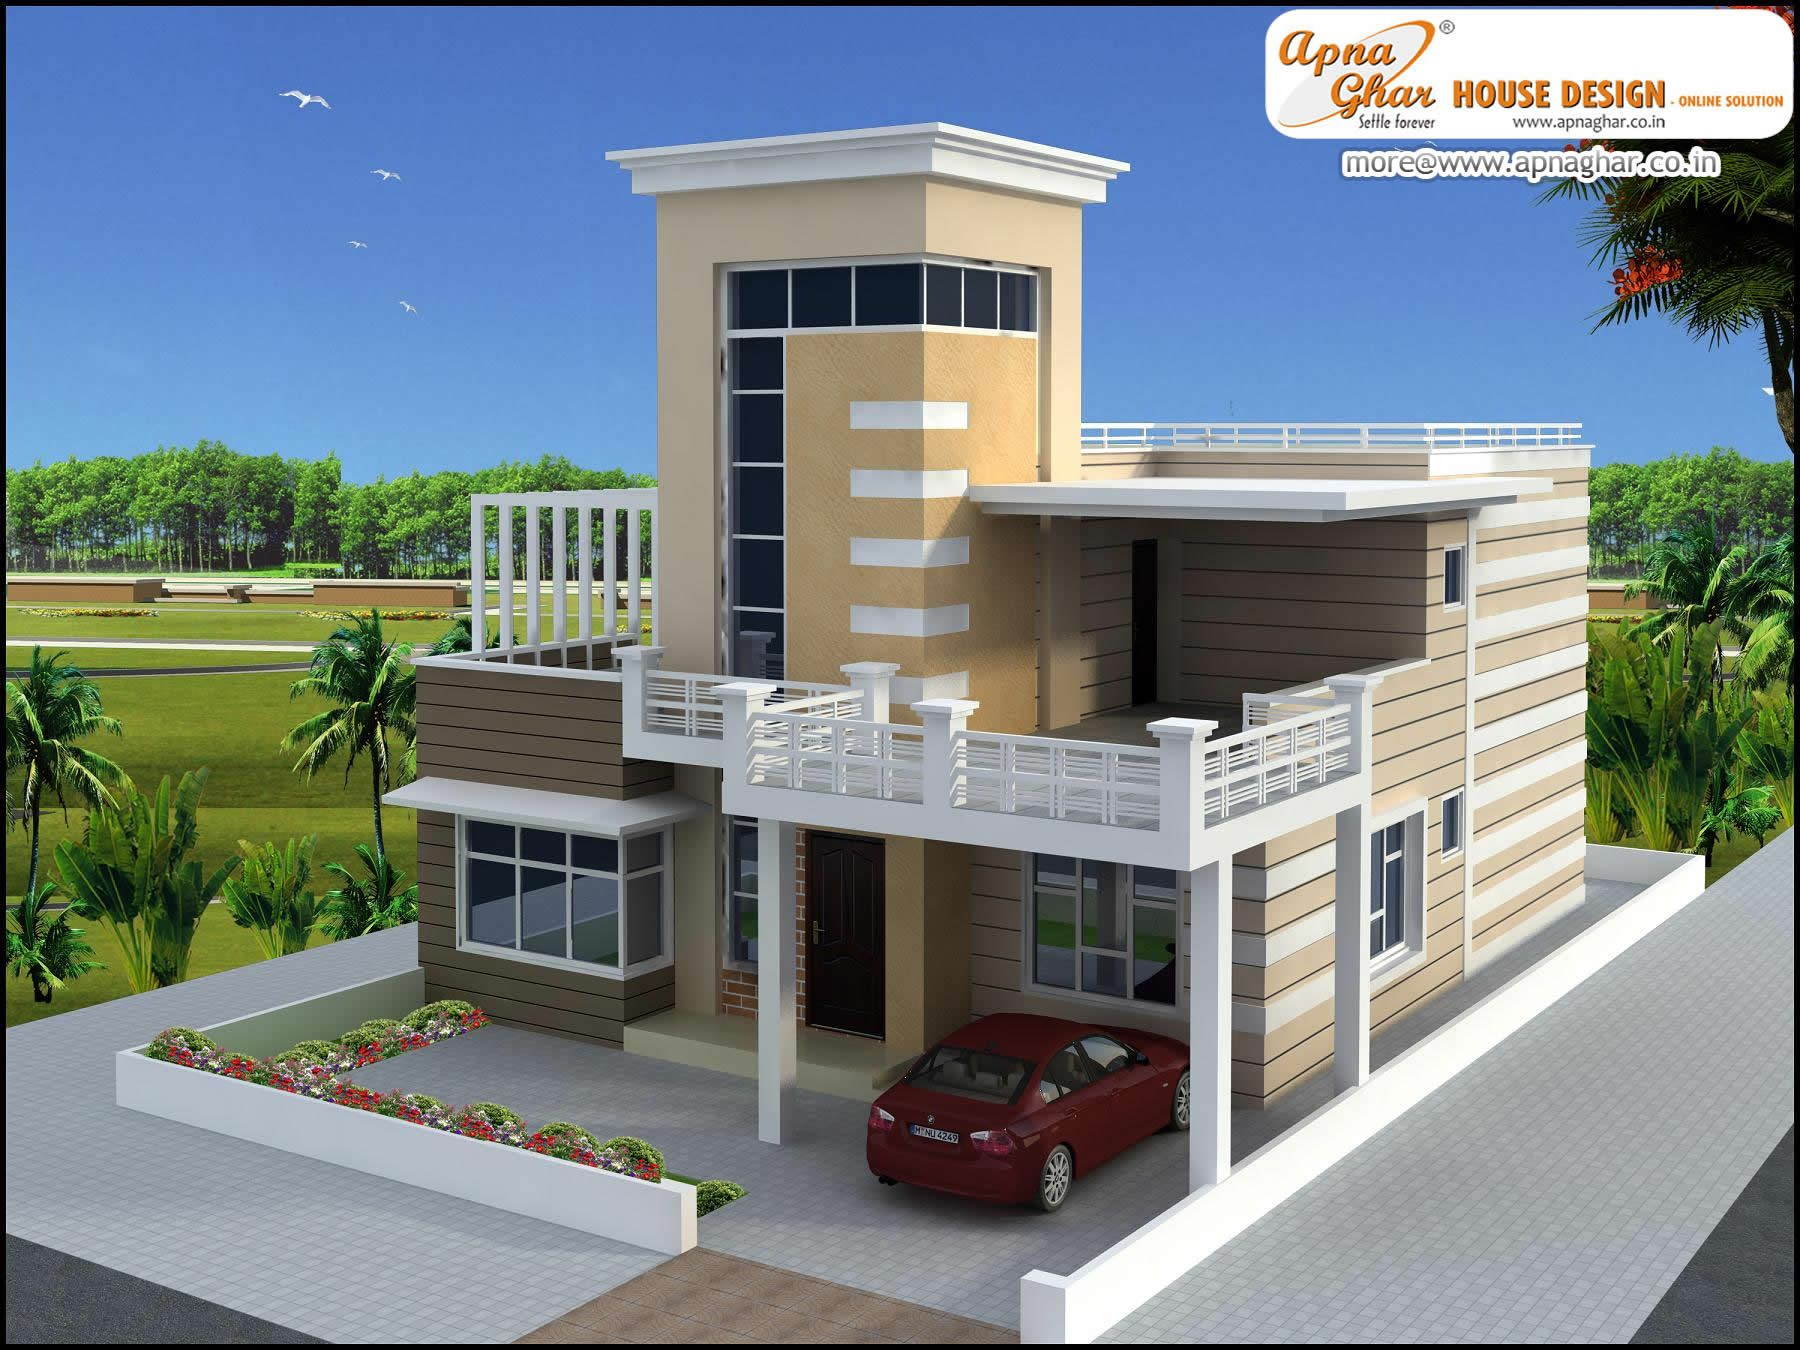 Luxury duplex 2 floors house design area 252m2 21m x 12m click on this link http www - Luxury duplex house plans ...